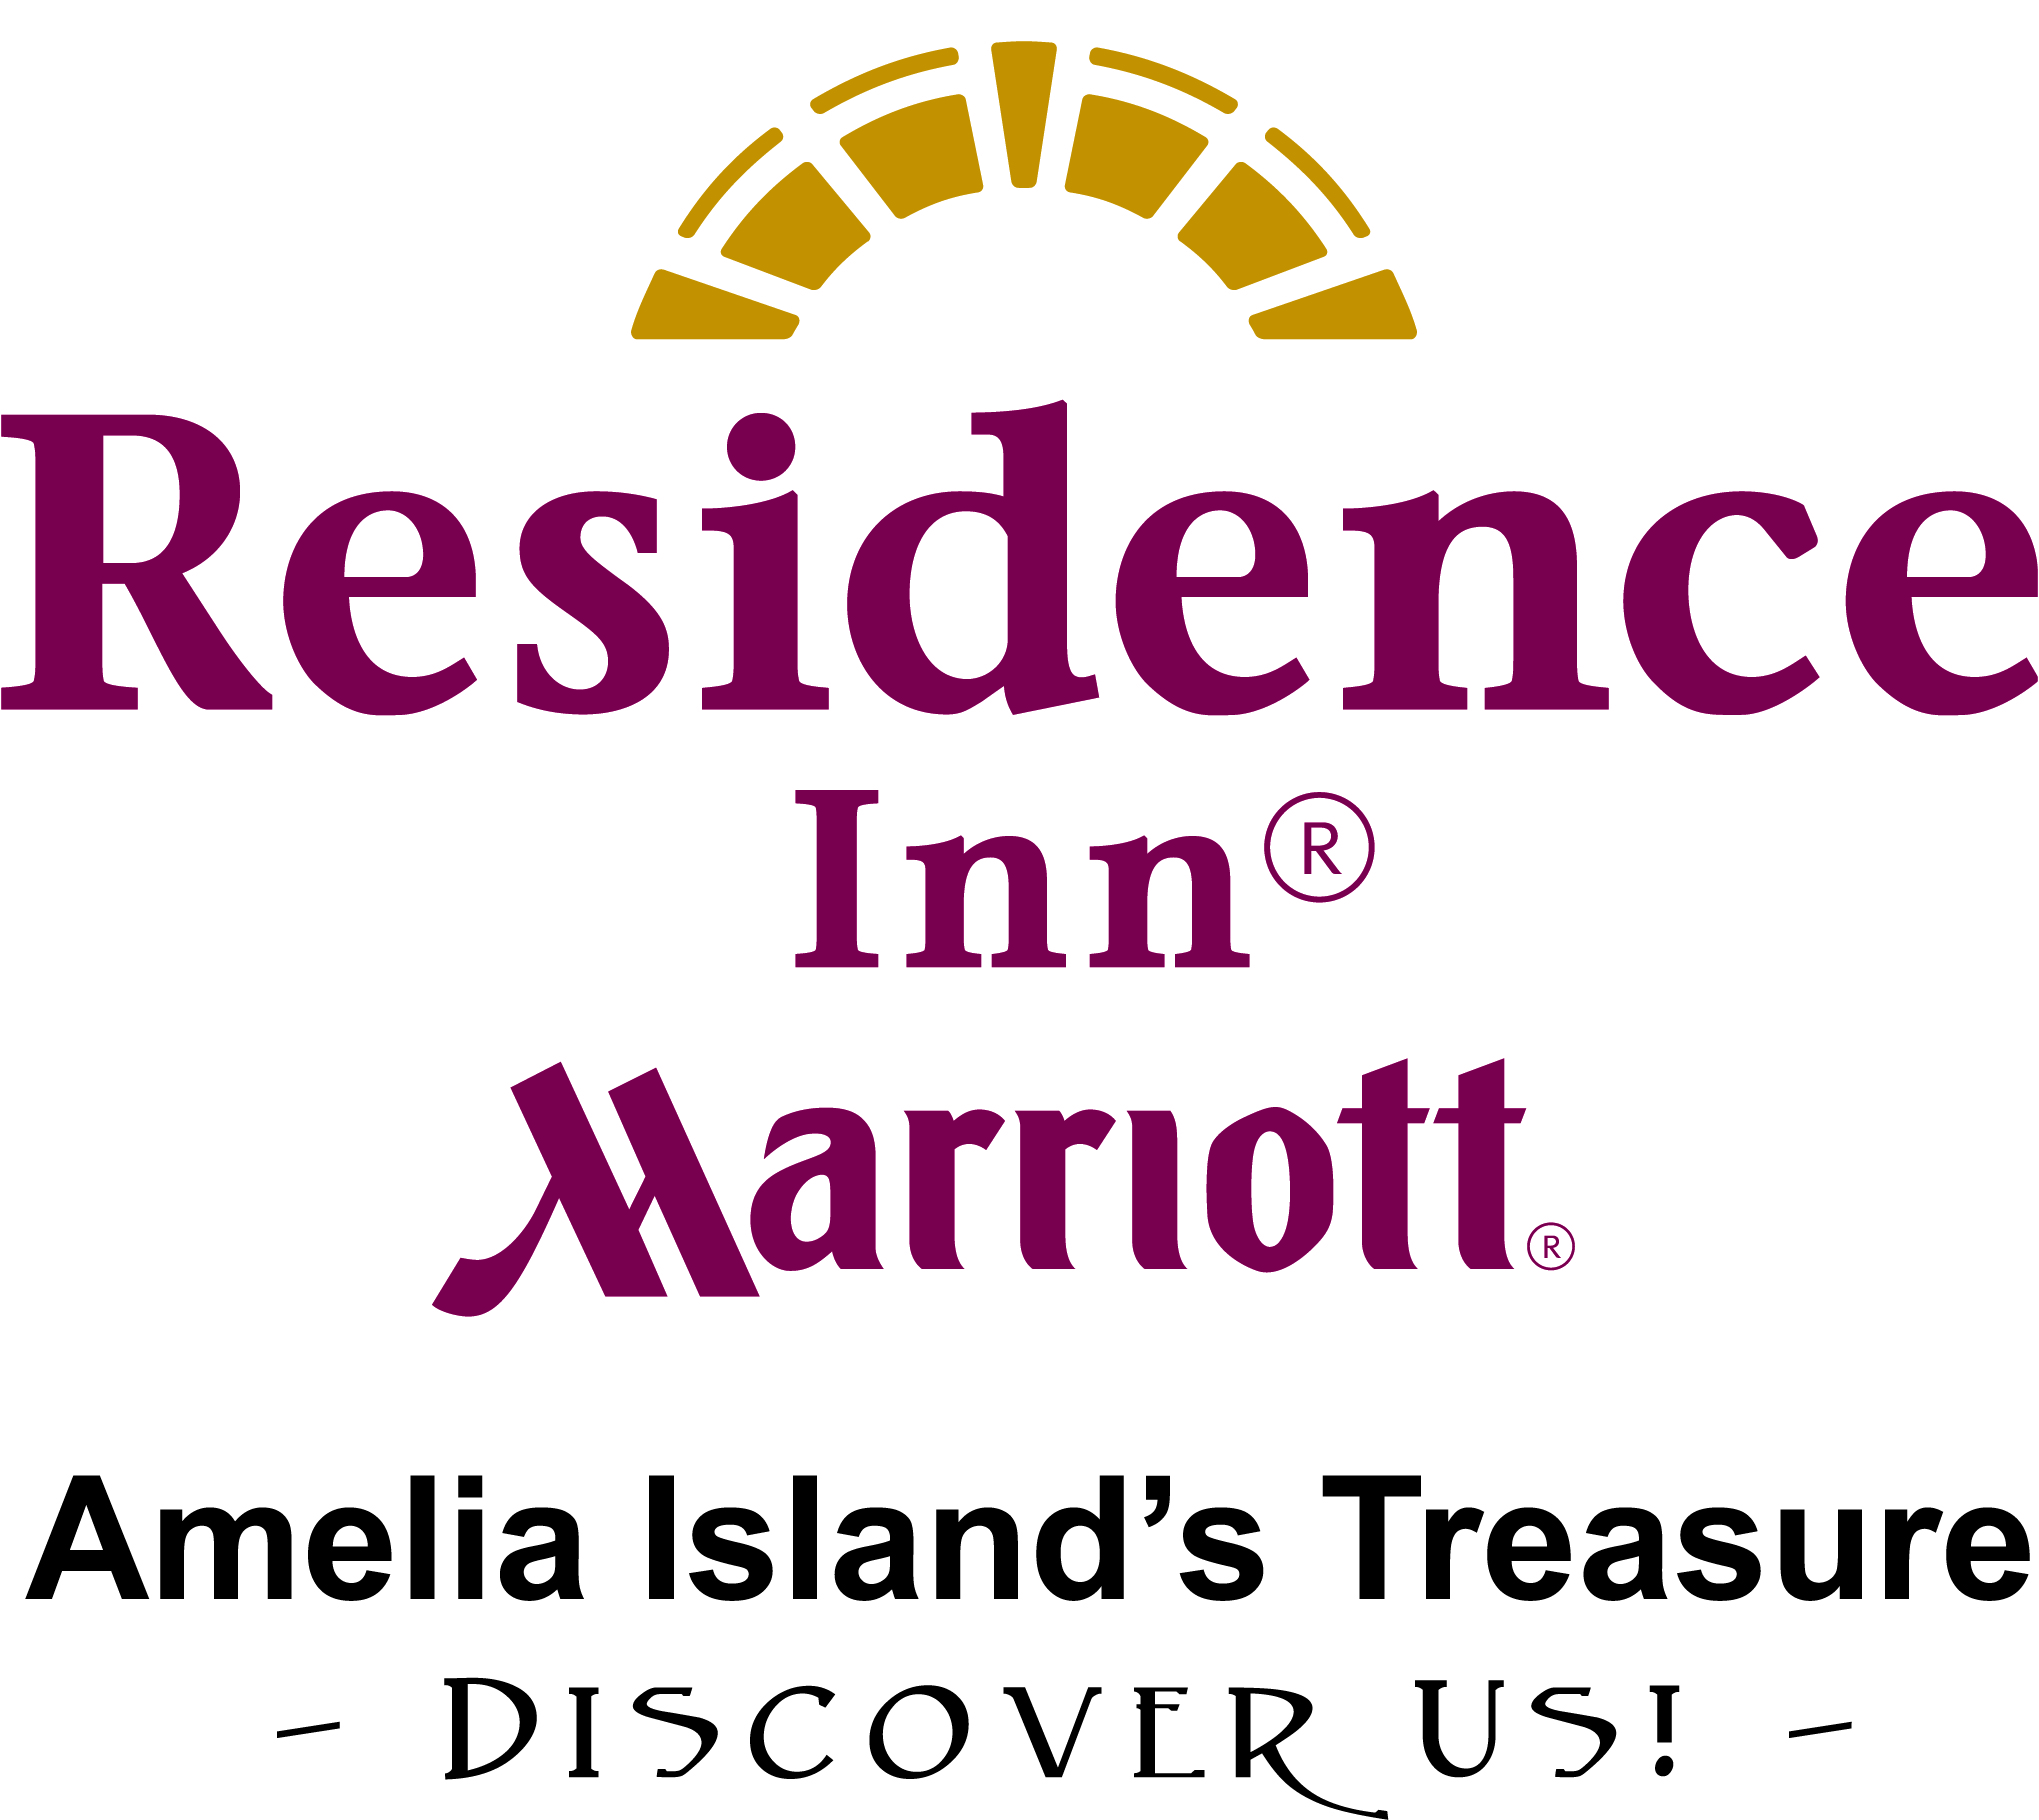 New RI Logo with Amelia Island Treasure